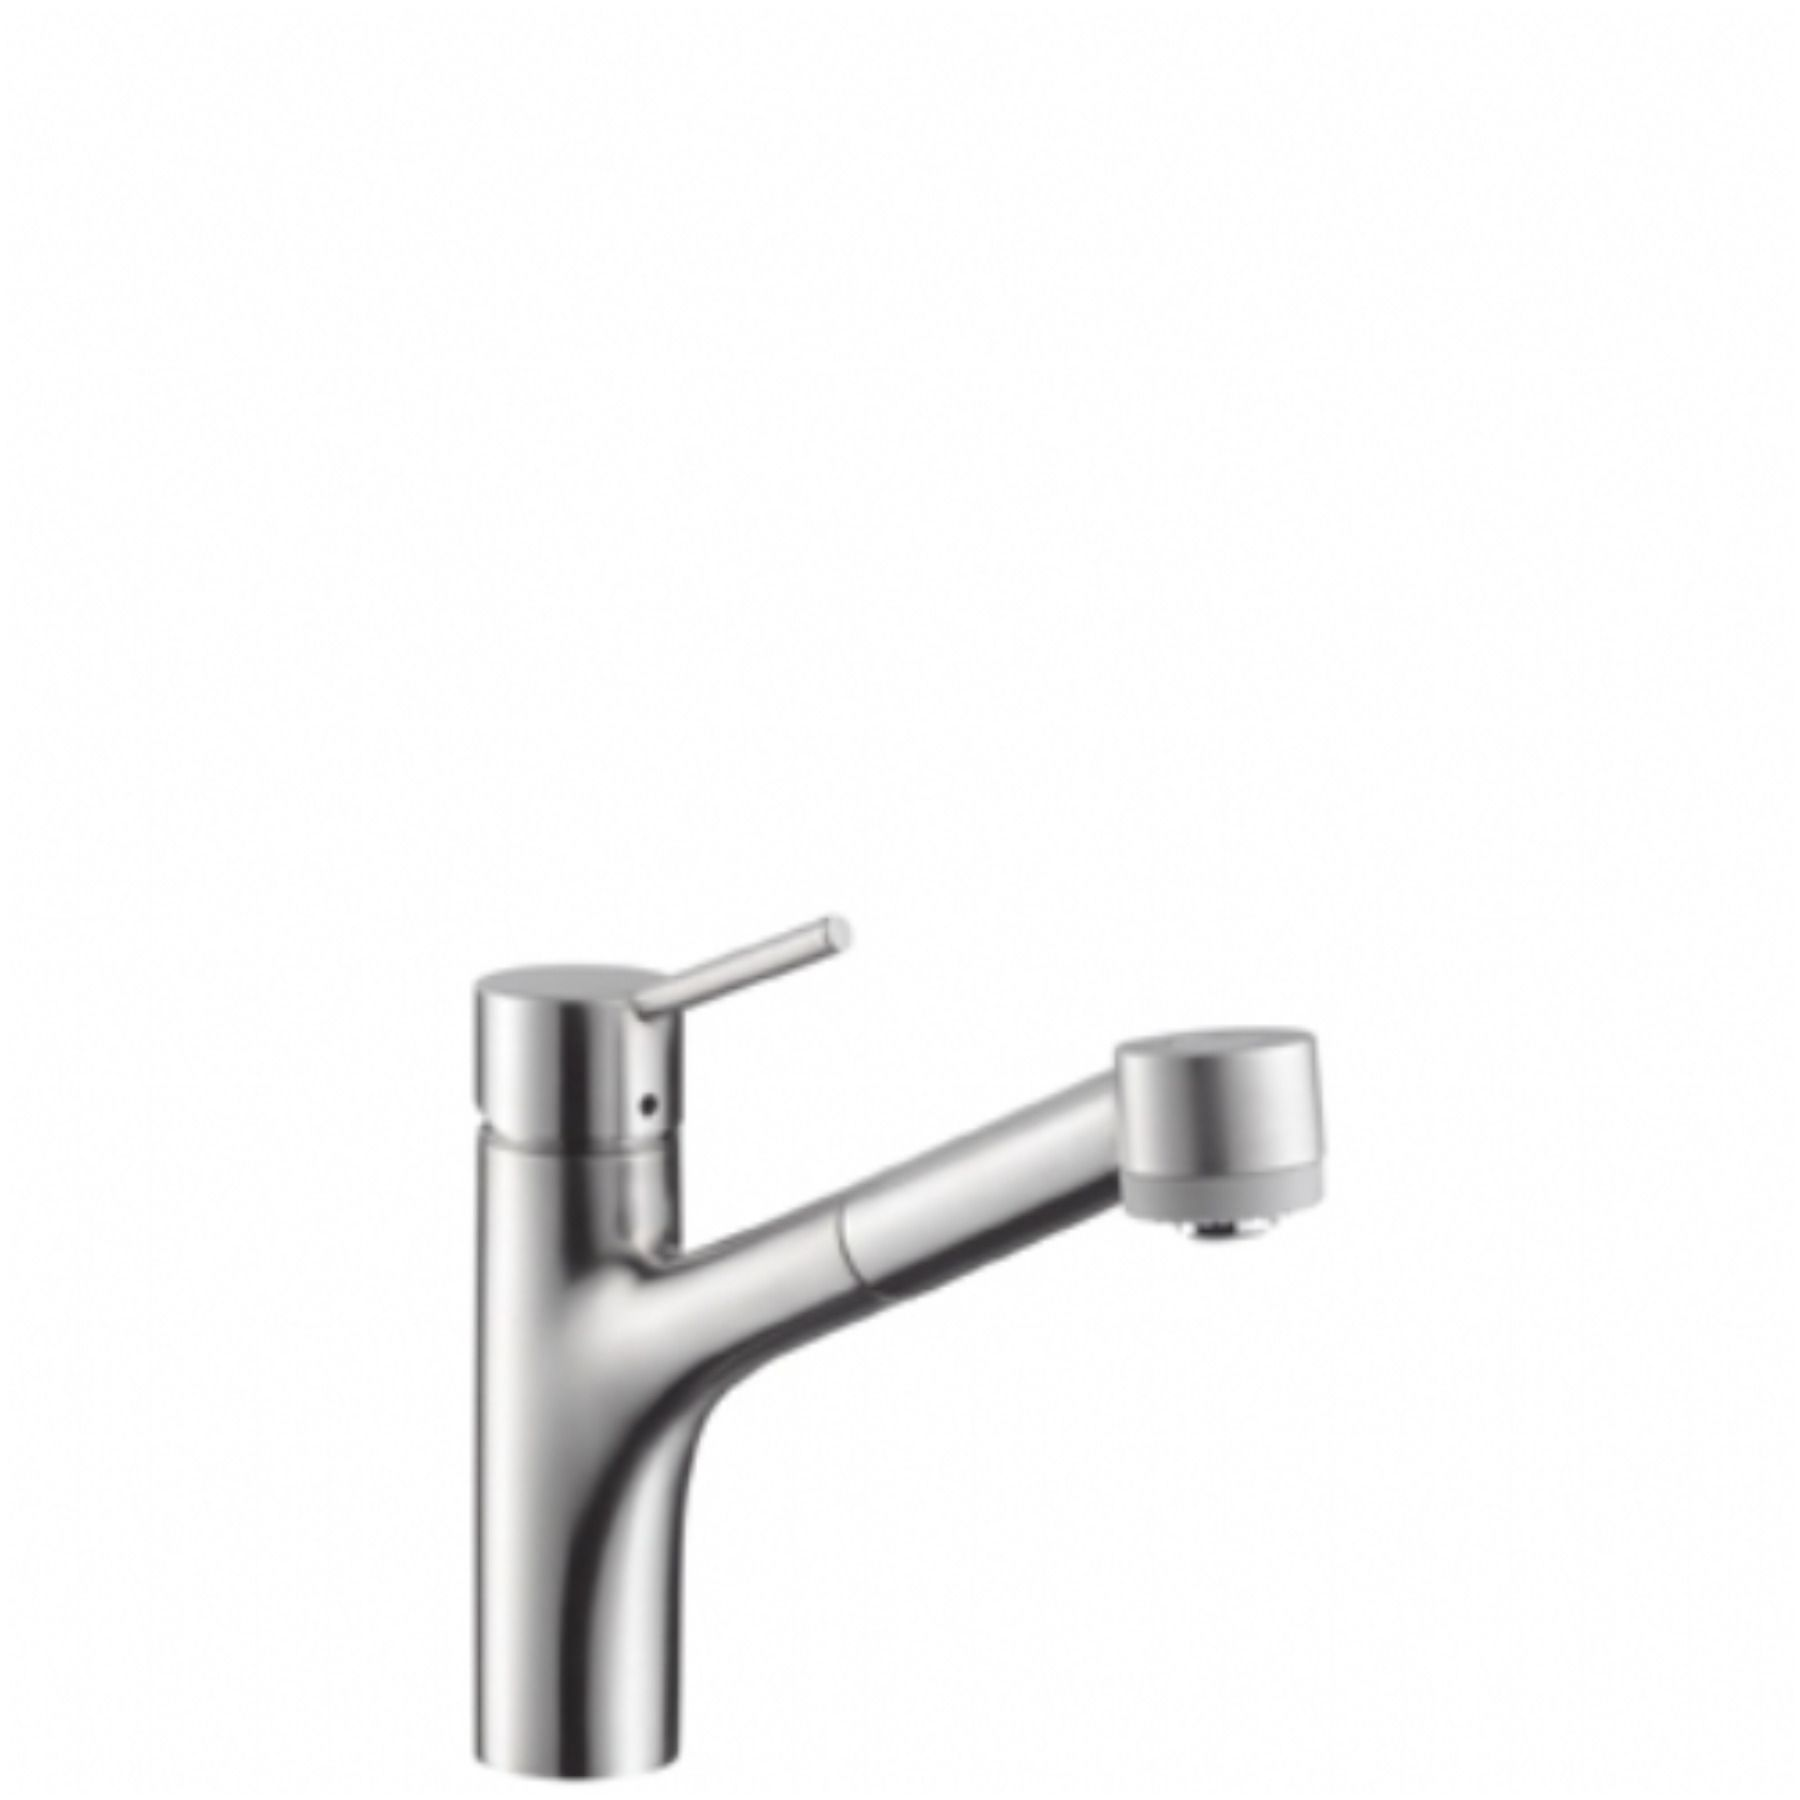 Hansgrohe Talis Kitchen Faucet Tboots Shop Steel